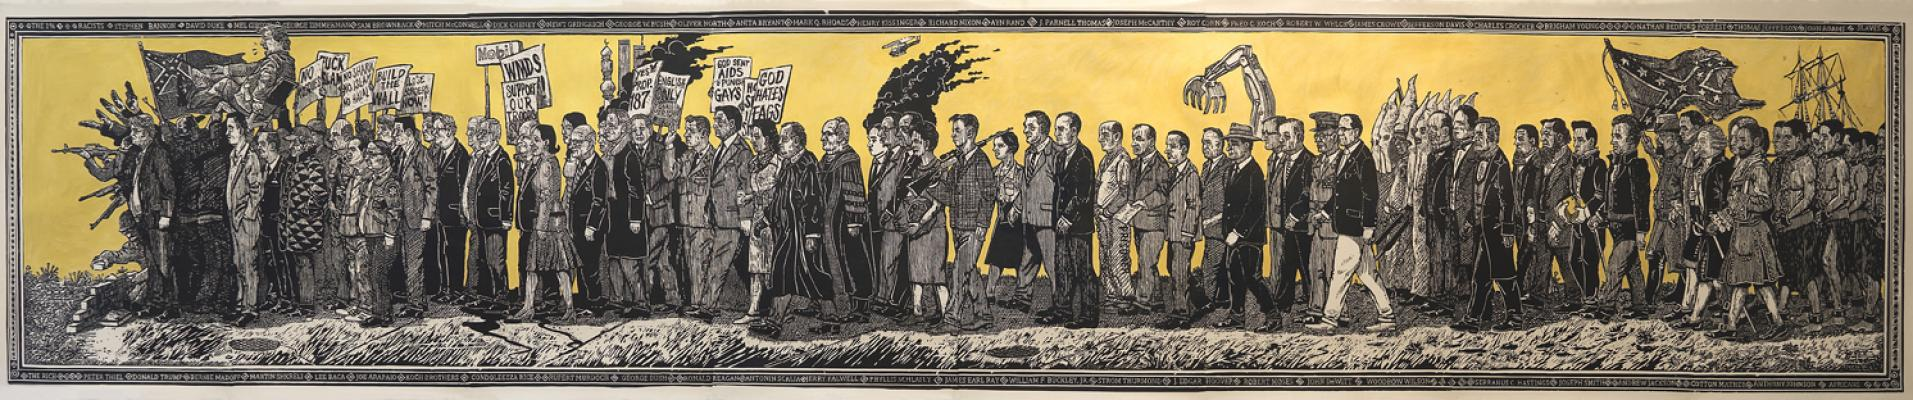 """American Procession (Conservatives)"" right panel, Sandow Birk and Elyse Pignolet, 2017, woodblock print on mulberry paper, 36"" x 17' 0"", Printed and Published by Mullowney Printing, San Francisco"